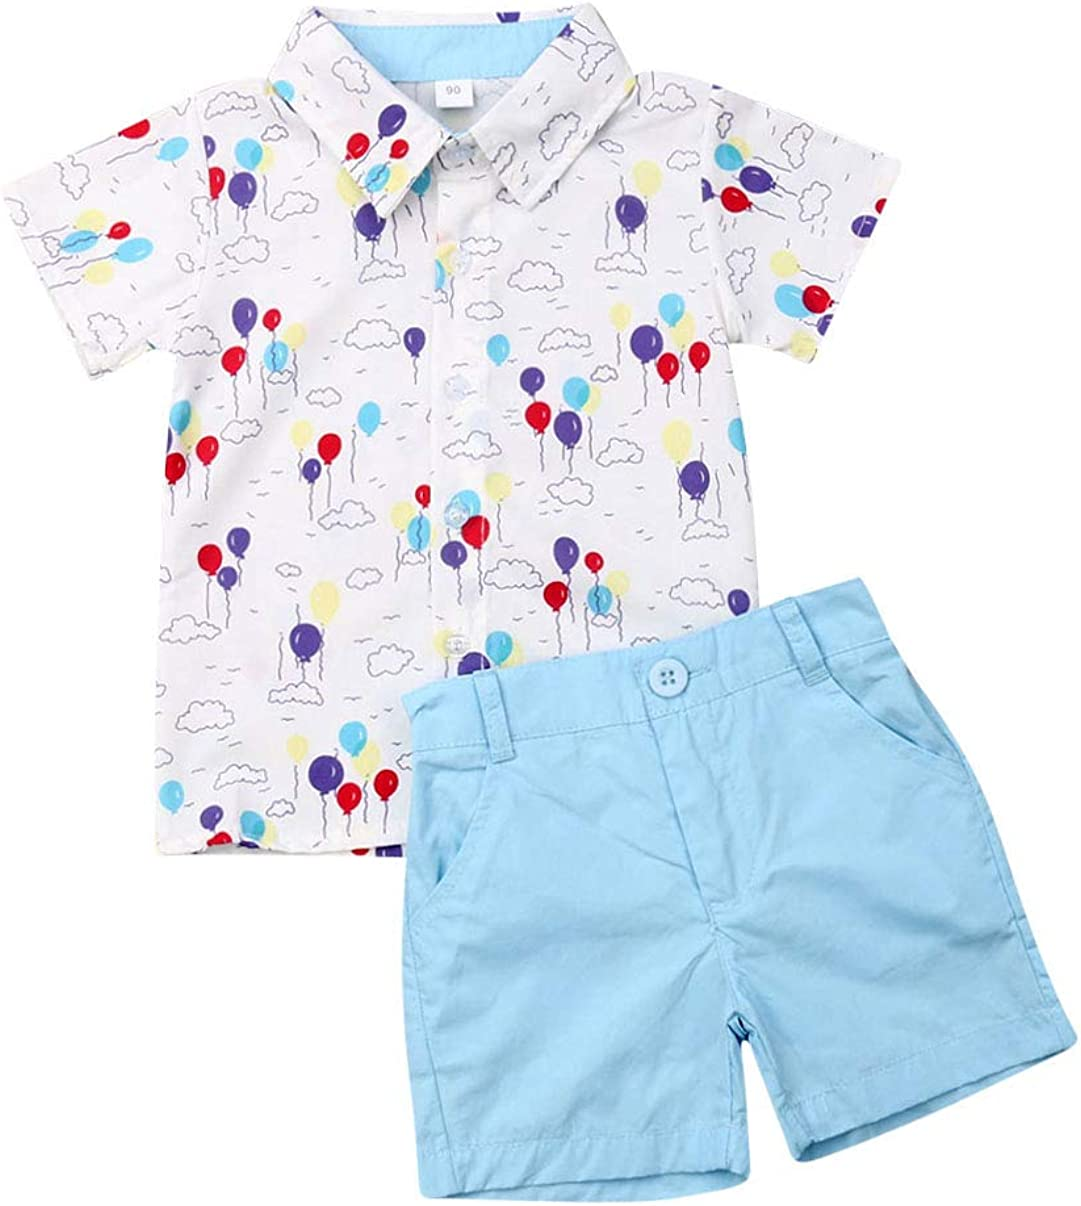 Toddler Kid Baby Boys Short Sleeve Tops T-Shirt Button Down Shirts Shorts Pants 2Pcs Summer Outfits 1-6Y